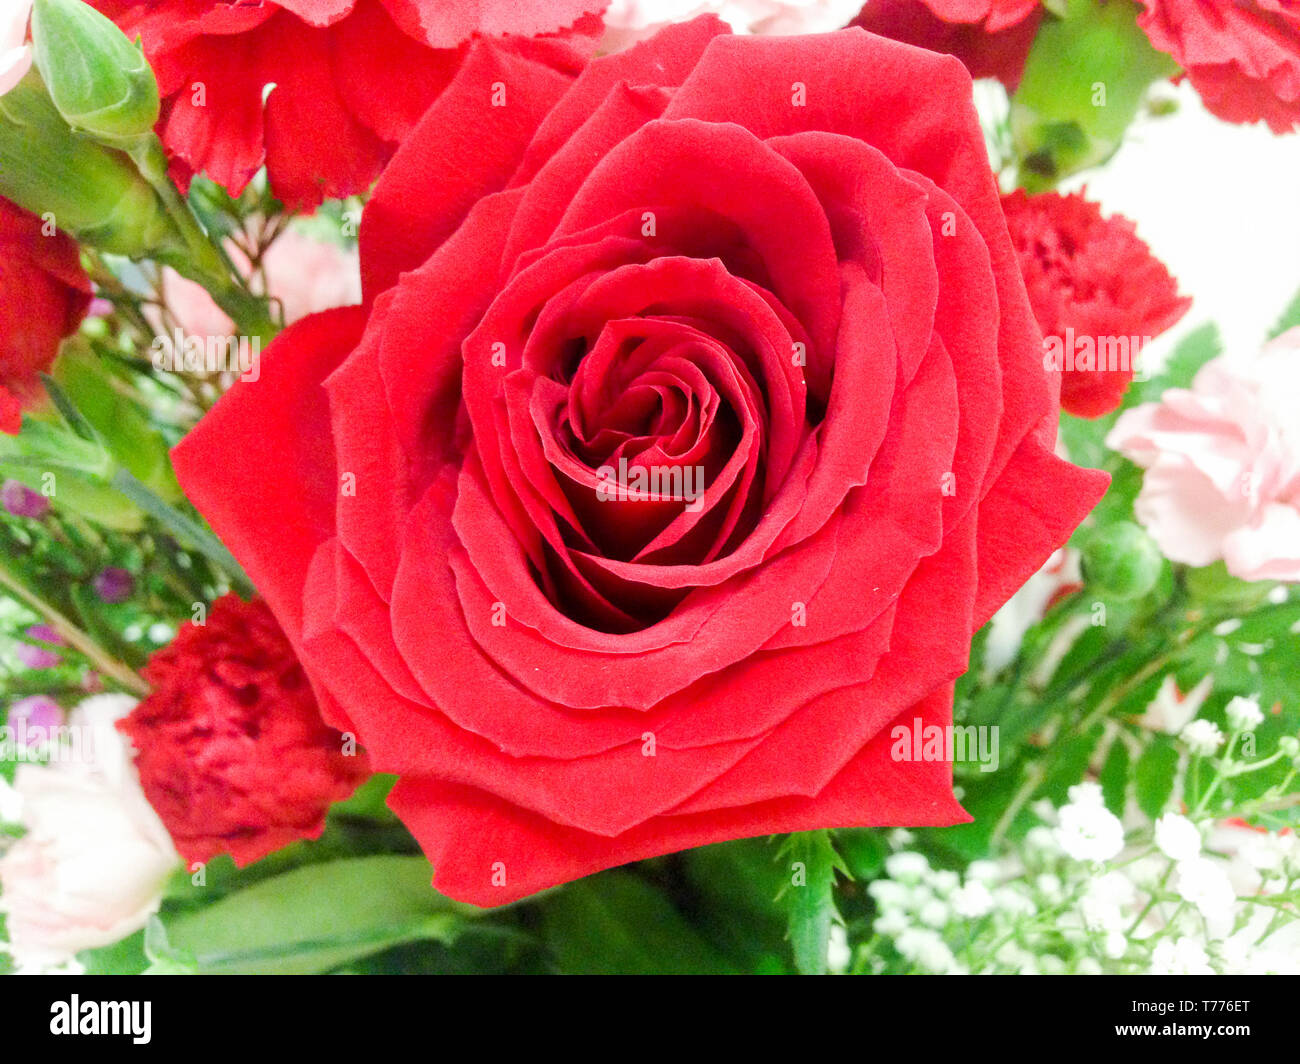 Detail of a red rose in a flower bouquet - Stock Image